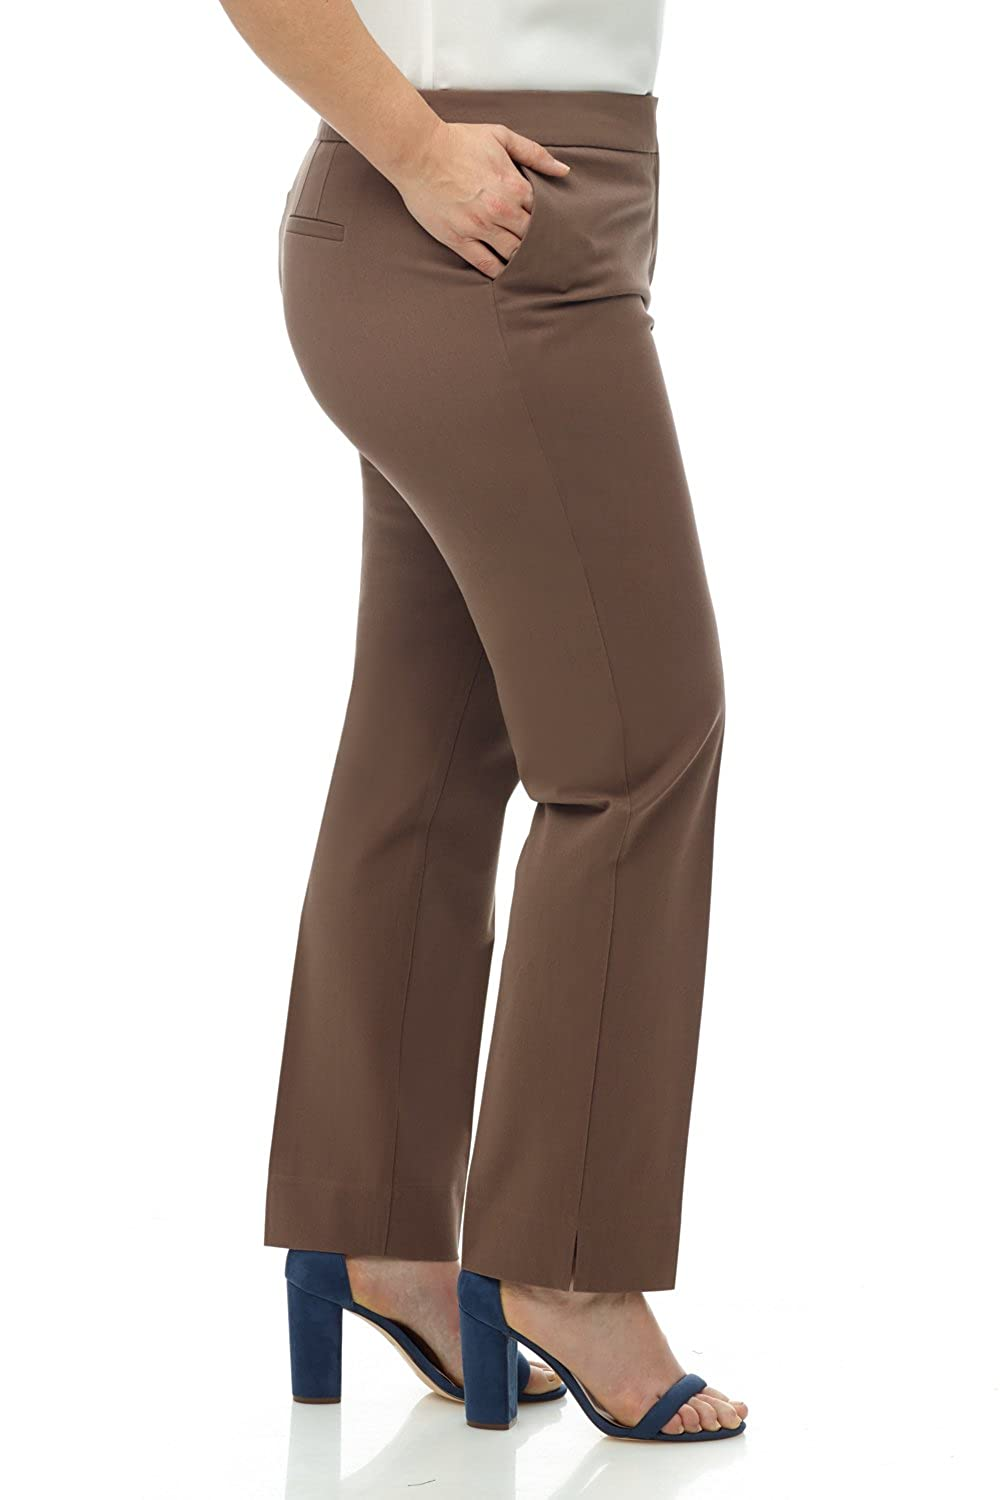 Rekucci Curvy Woman Plus Size Easy Chic Zip Front Pant in 4-Way Stretch Cotton